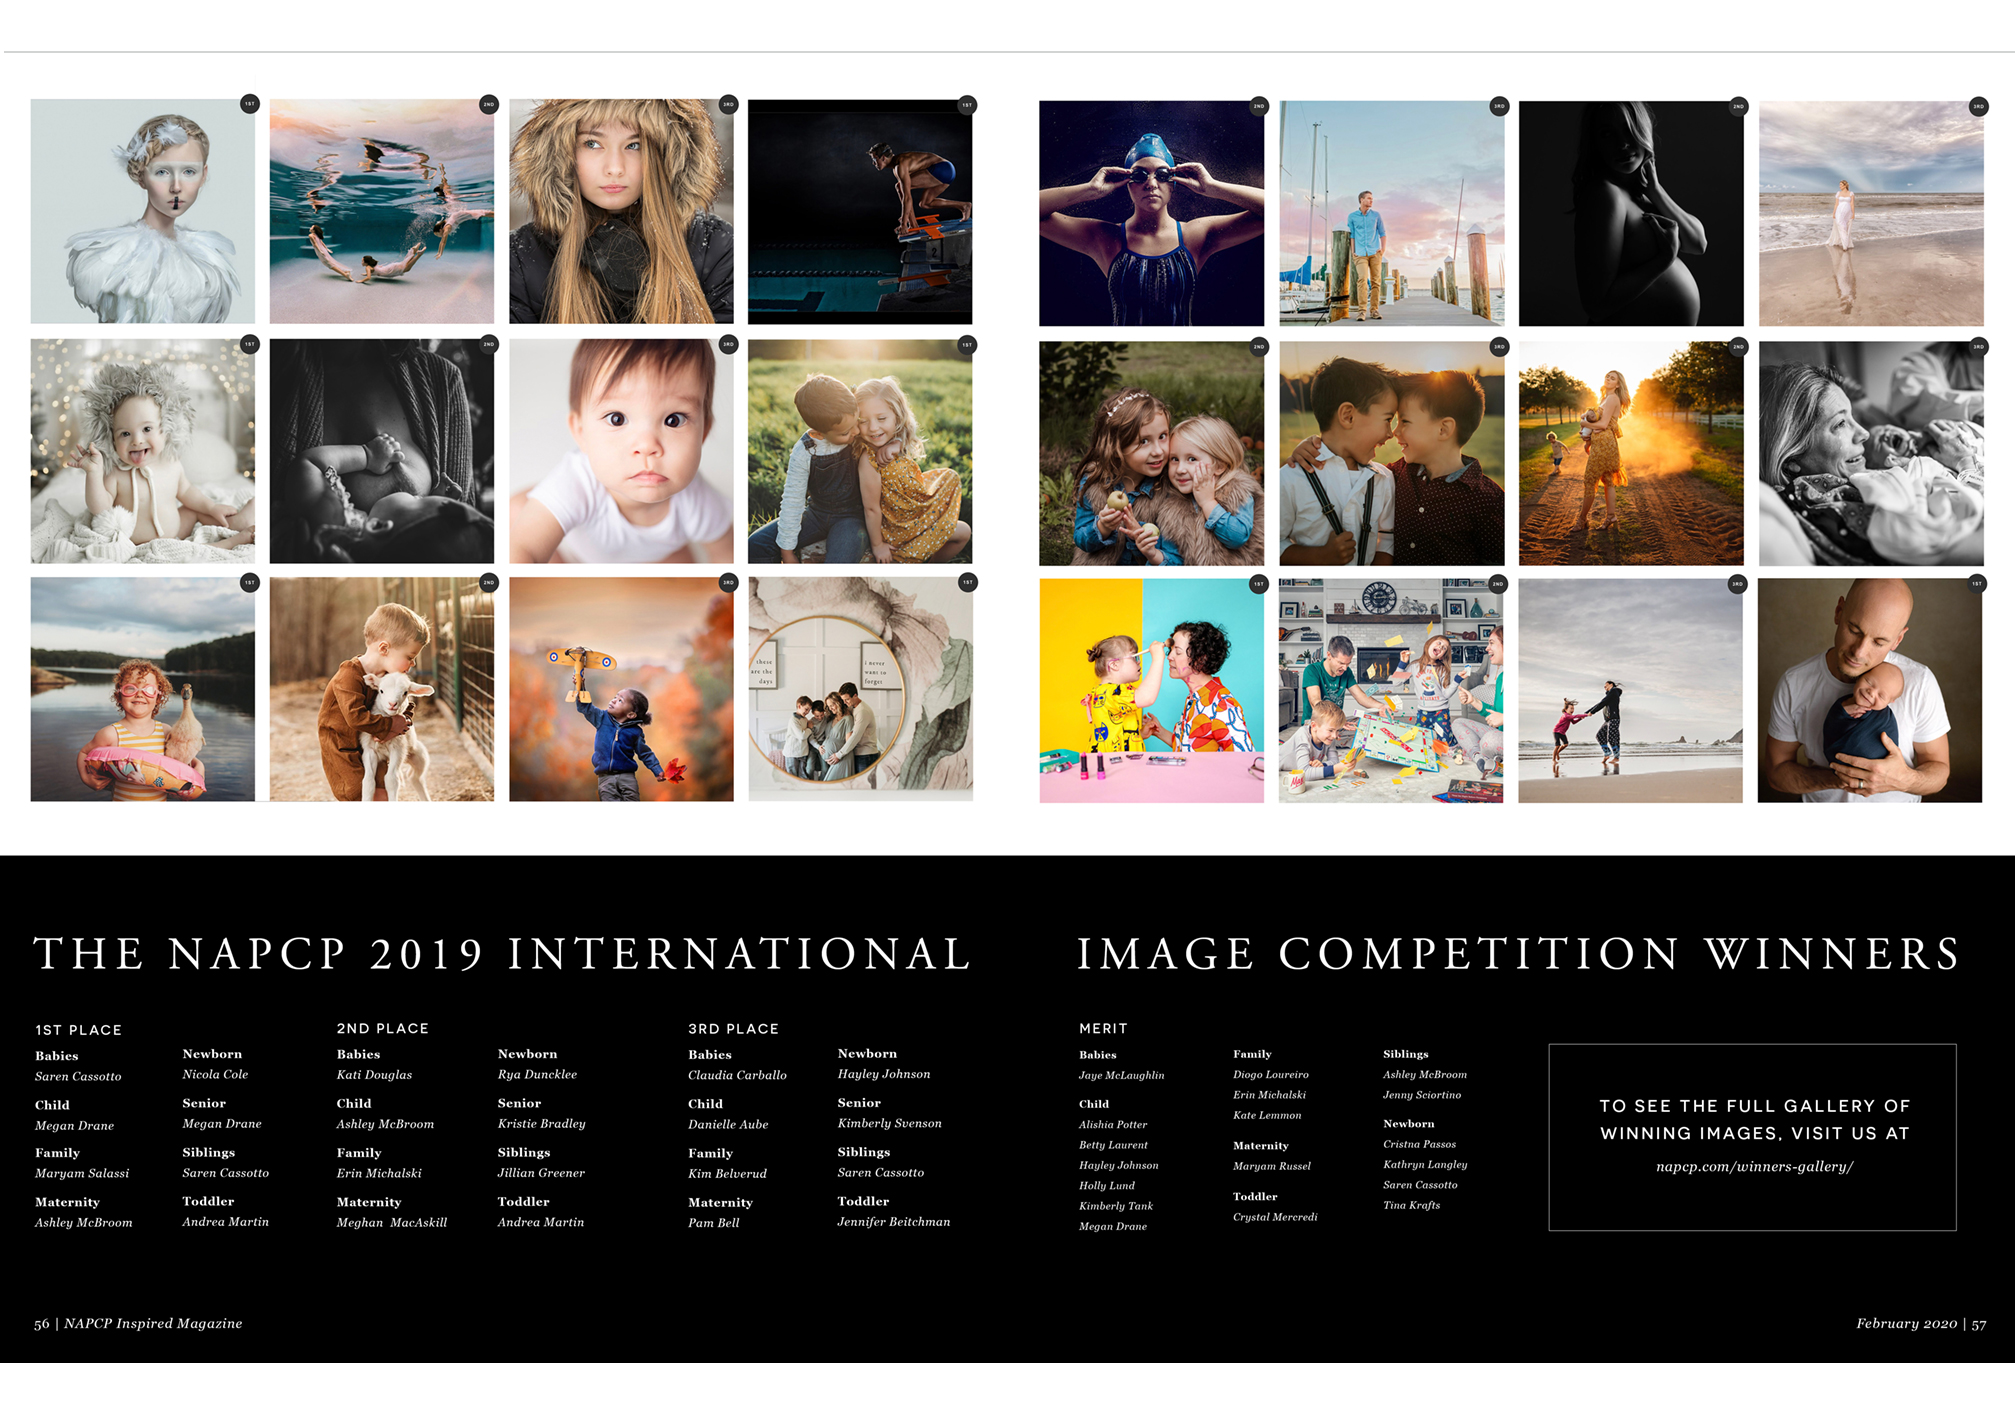 NAPCP 2019 International Image Competition Winners, winning images spread, NAPCP Inspired Magazine